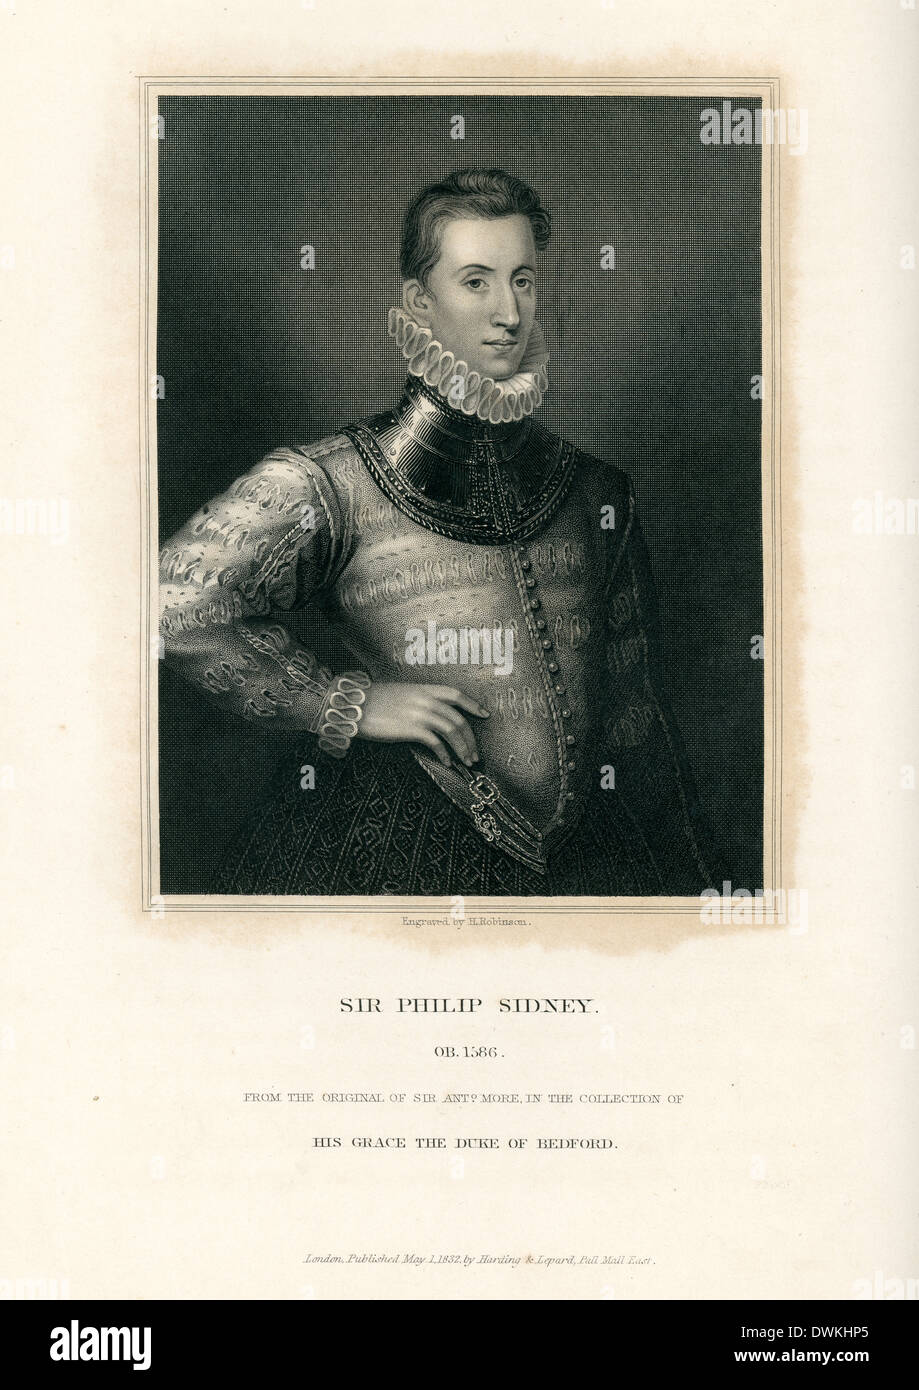 Portrait of Sir Philip Sidney an English poet, courtier and soldier - Stock Image